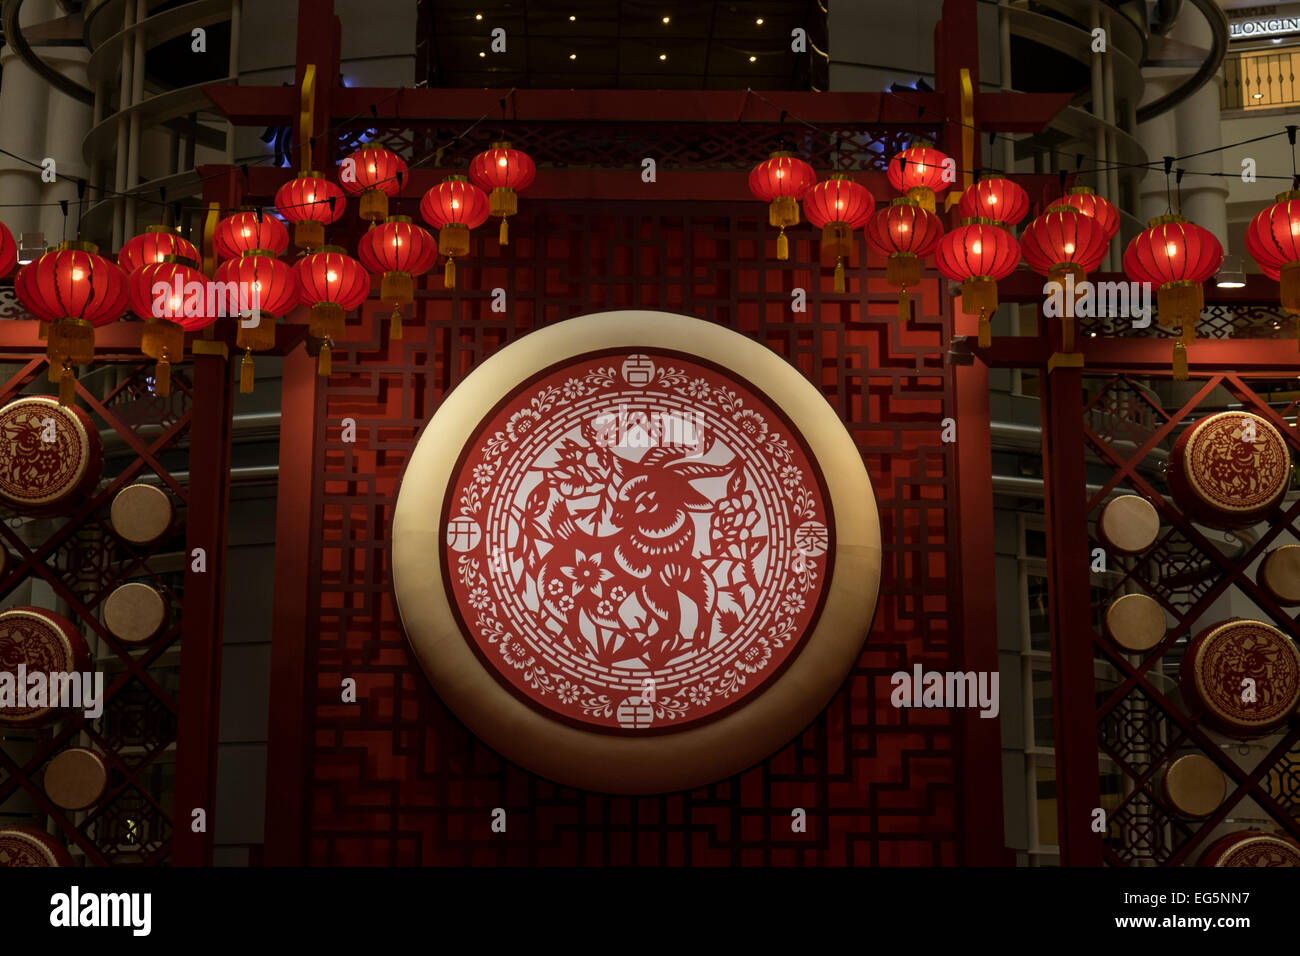 Red lanterns and other decorations in a shopping mall to celebrate the Chinese new year of the goat, Kuala Lumpur, - Stock Image